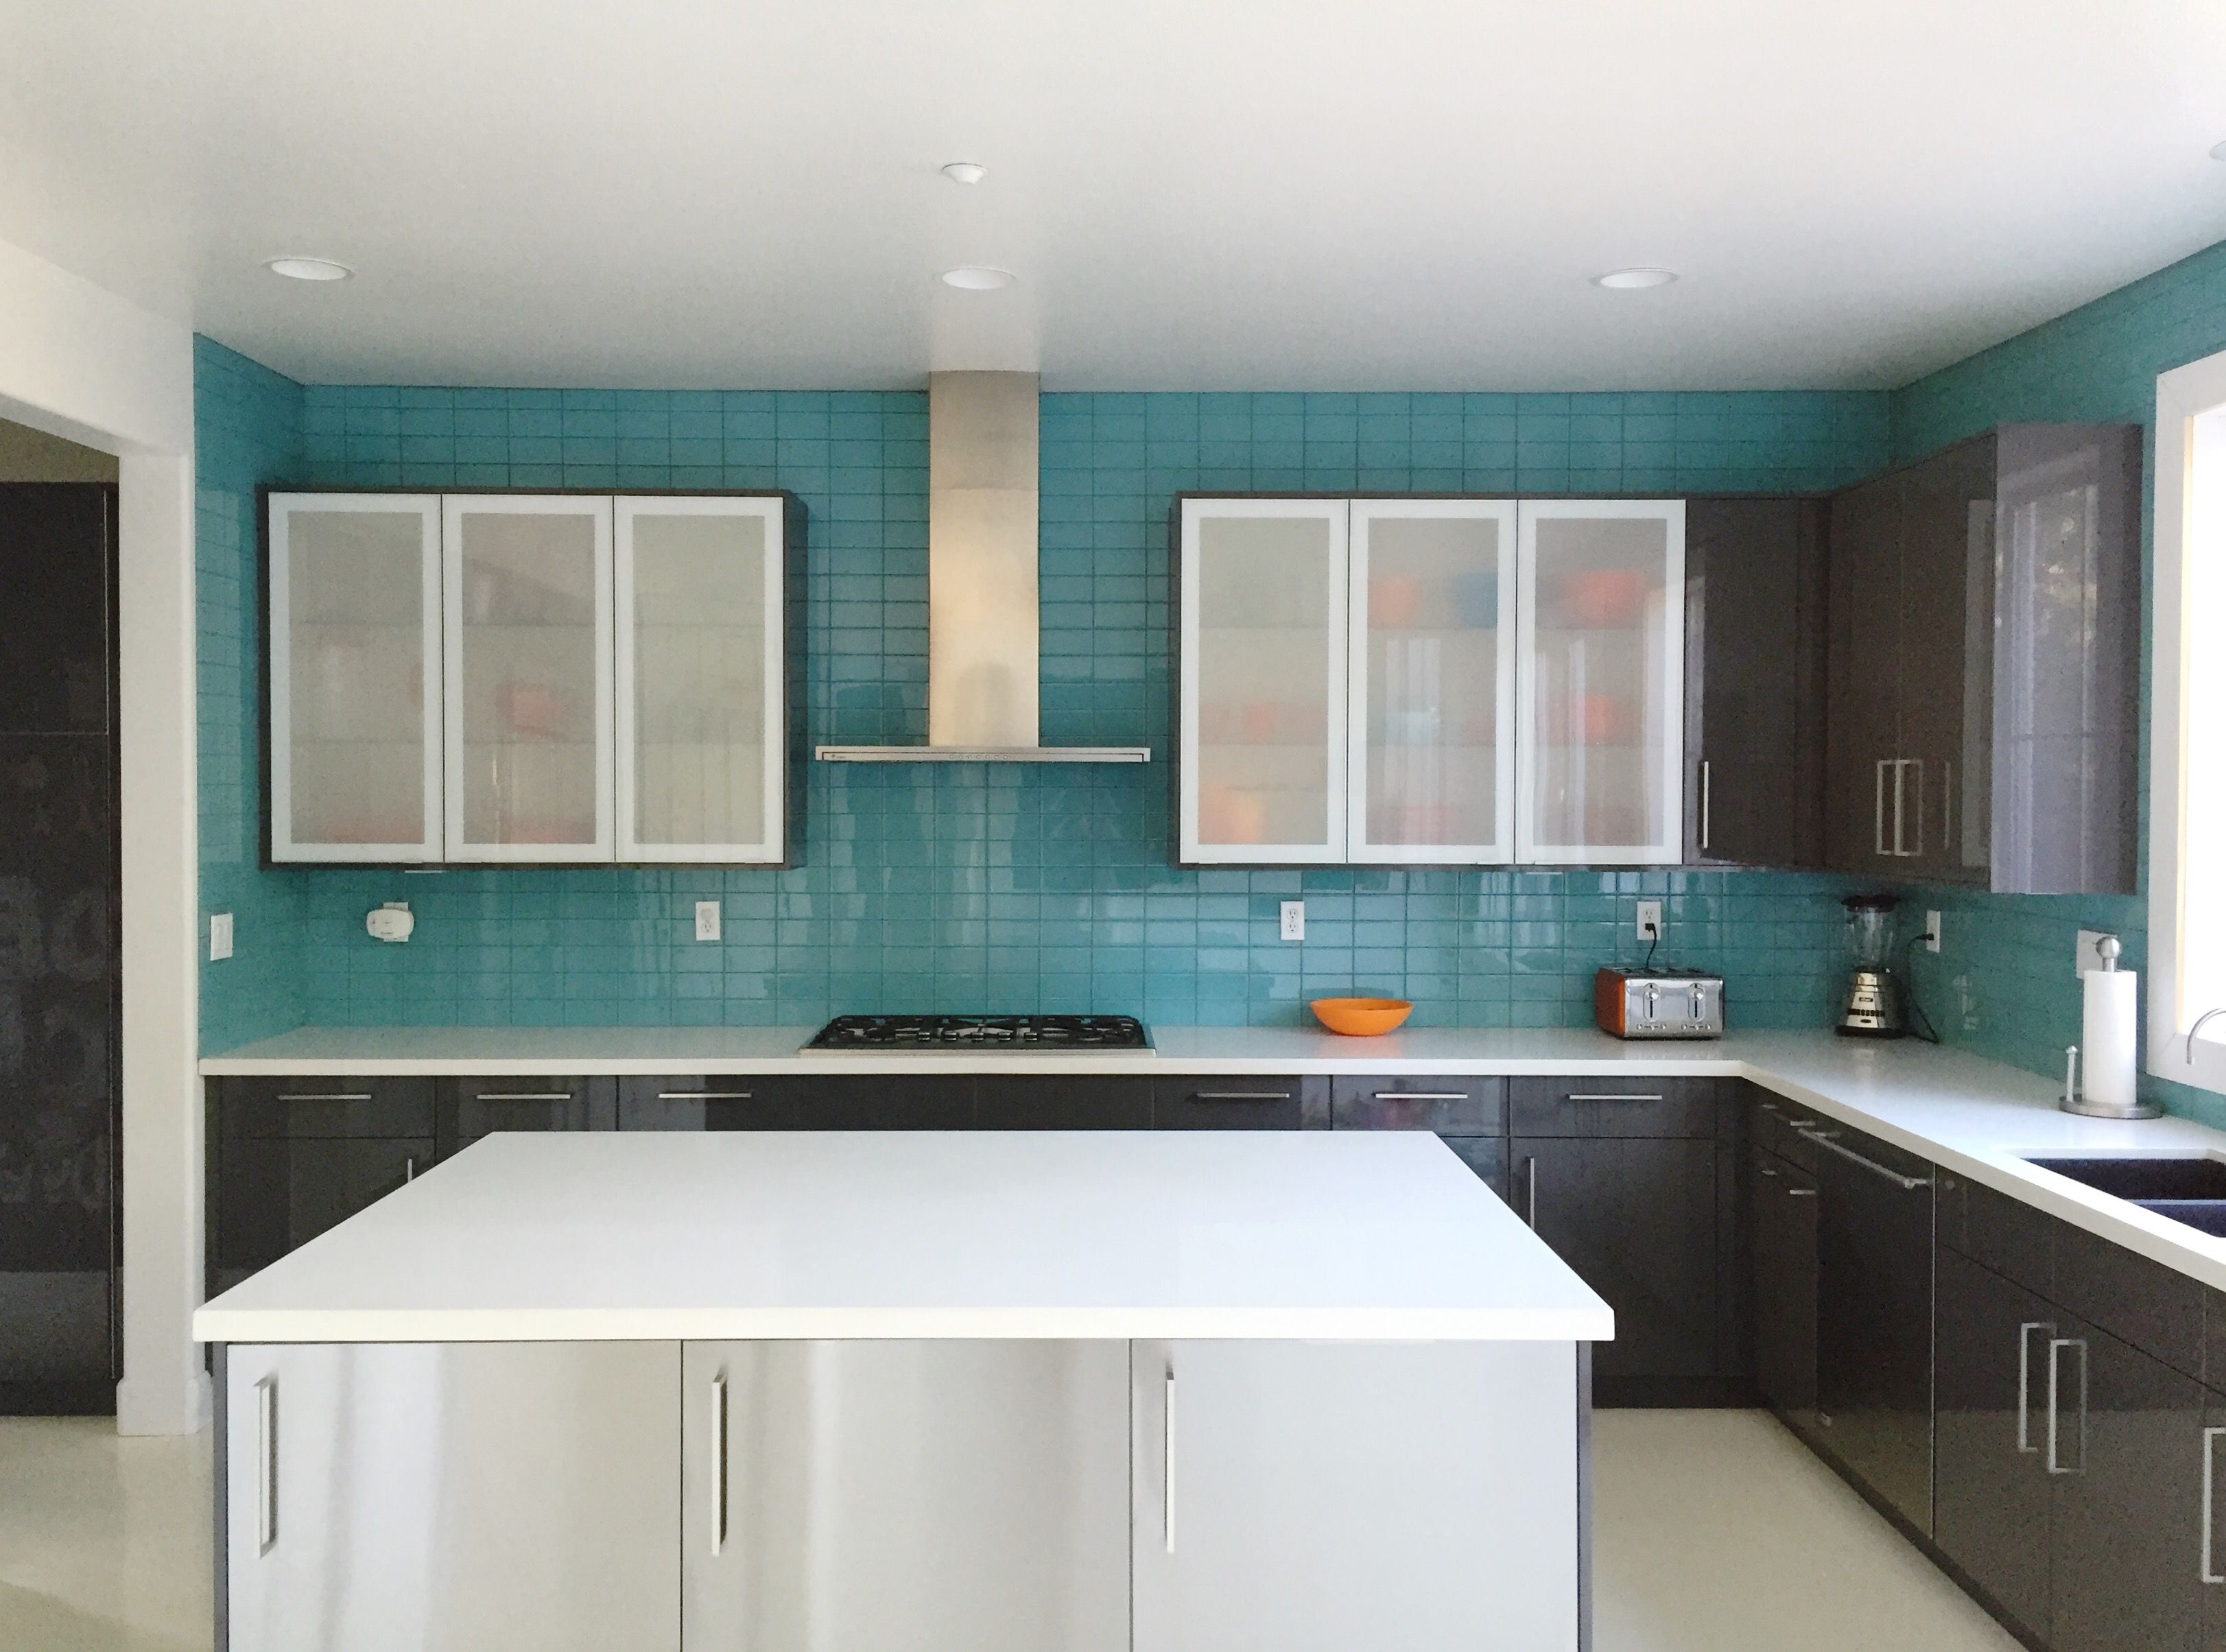 Aqua Glass Subway Tile Glass Backsplash Kitchen Contemporary Kitchen Backsplash Modern Kitchen Backsplash